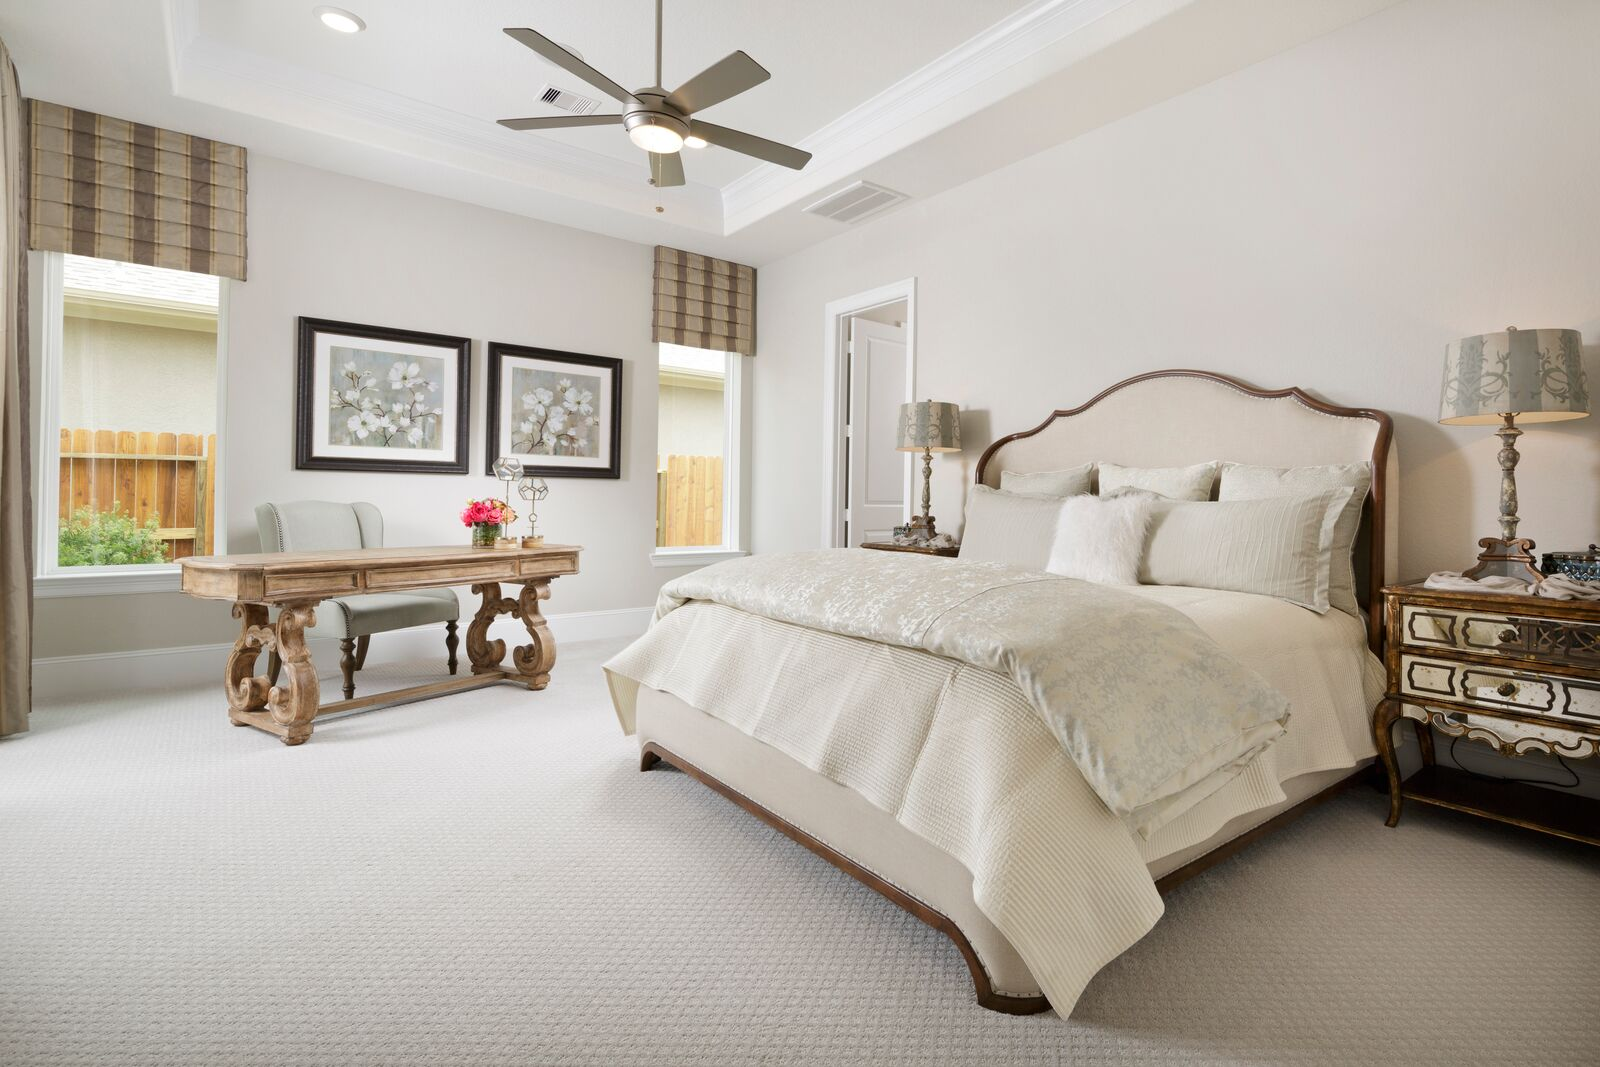 Custom Built Homes in Cypress, TX